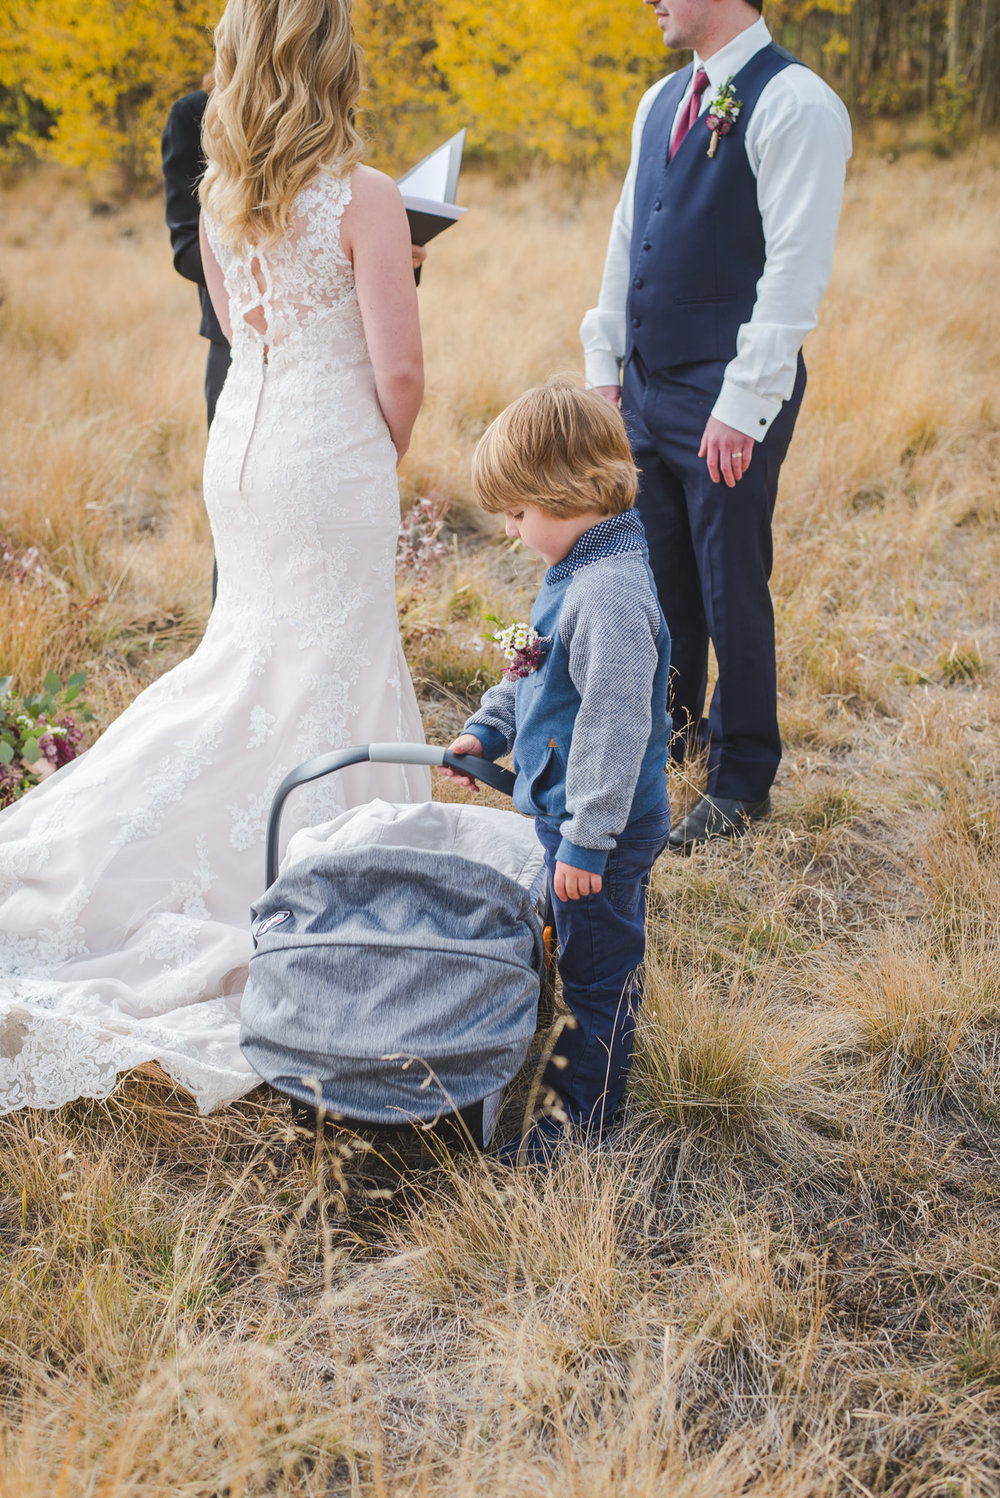 Autumn elopement in Breckenridge, Colorado | Young boy watching over his younger baby brother at ceremony | Summit Mountain Weddings